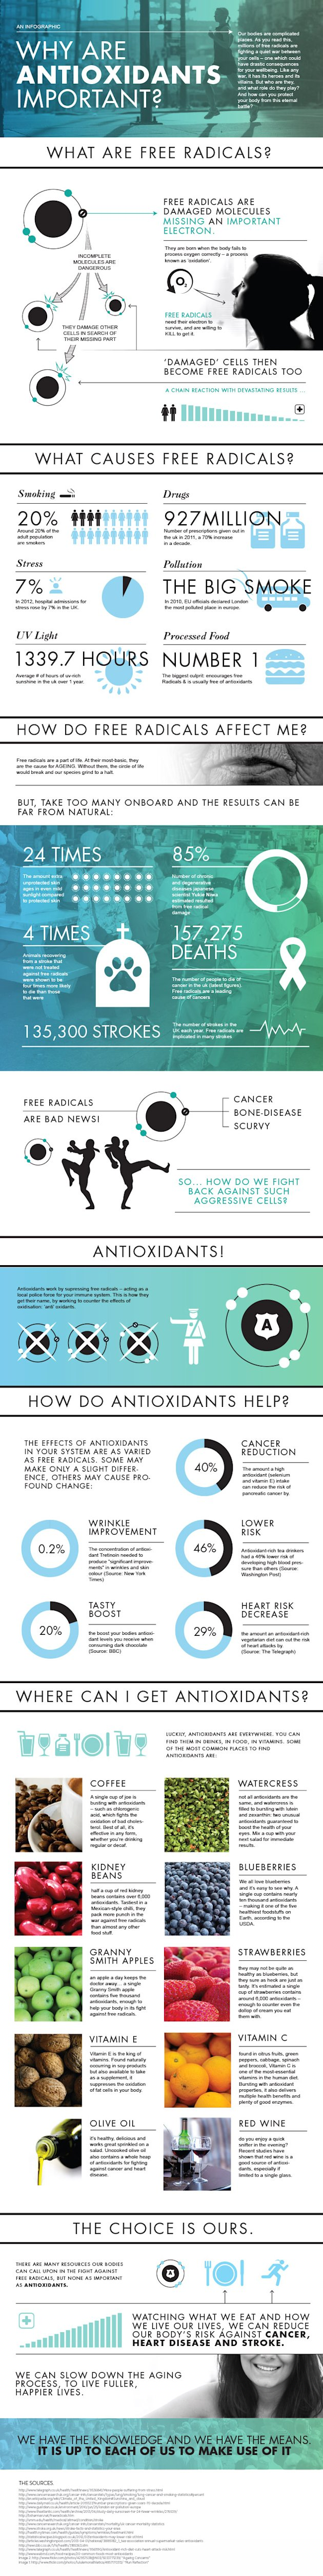 Why Are Antioxidants Important? [Infographic] image Antioxidant Infographic SpaceNK web